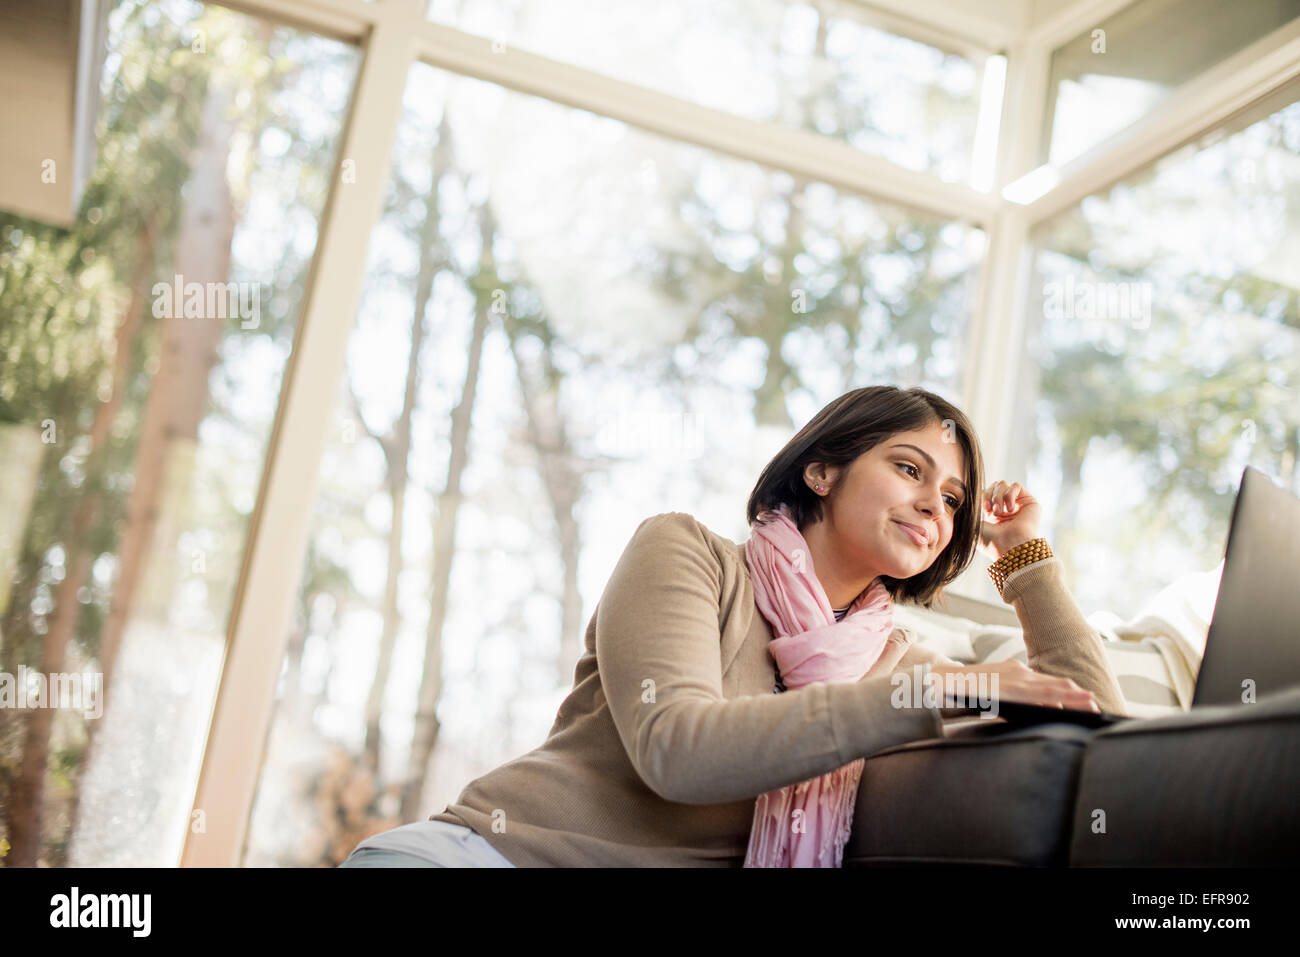 Woman sitting on the floor in front of a sofa looking at her laptop. - Stock Image